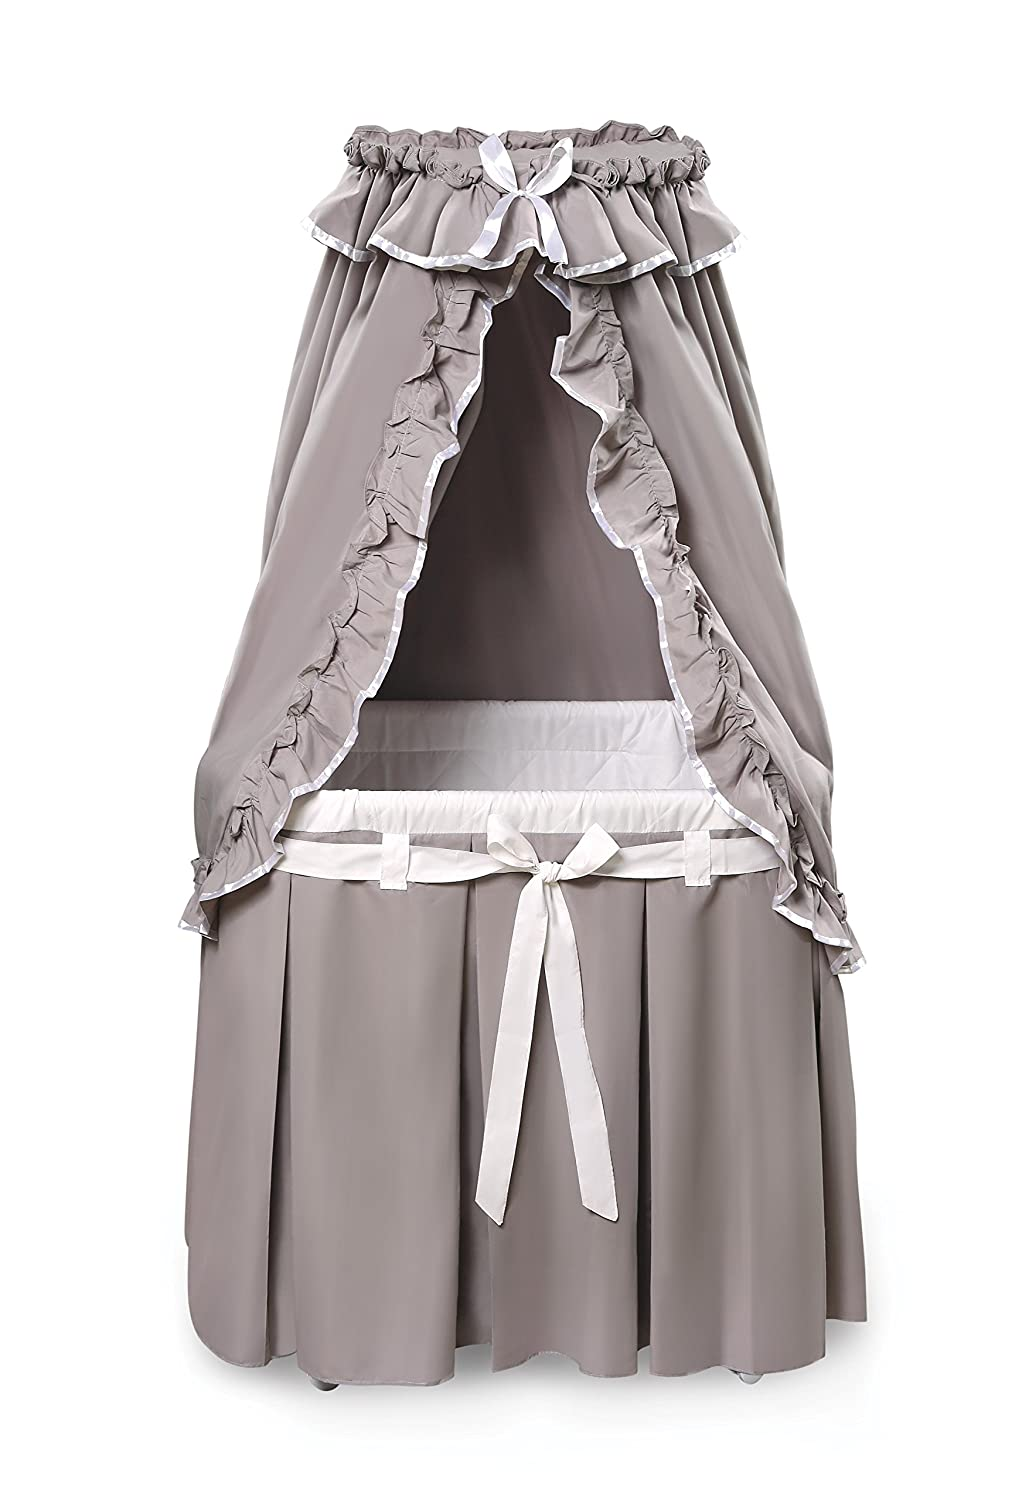 Badger Basket Majesty Baby Bassinet with Canopy Bedding, Gray/White 30063